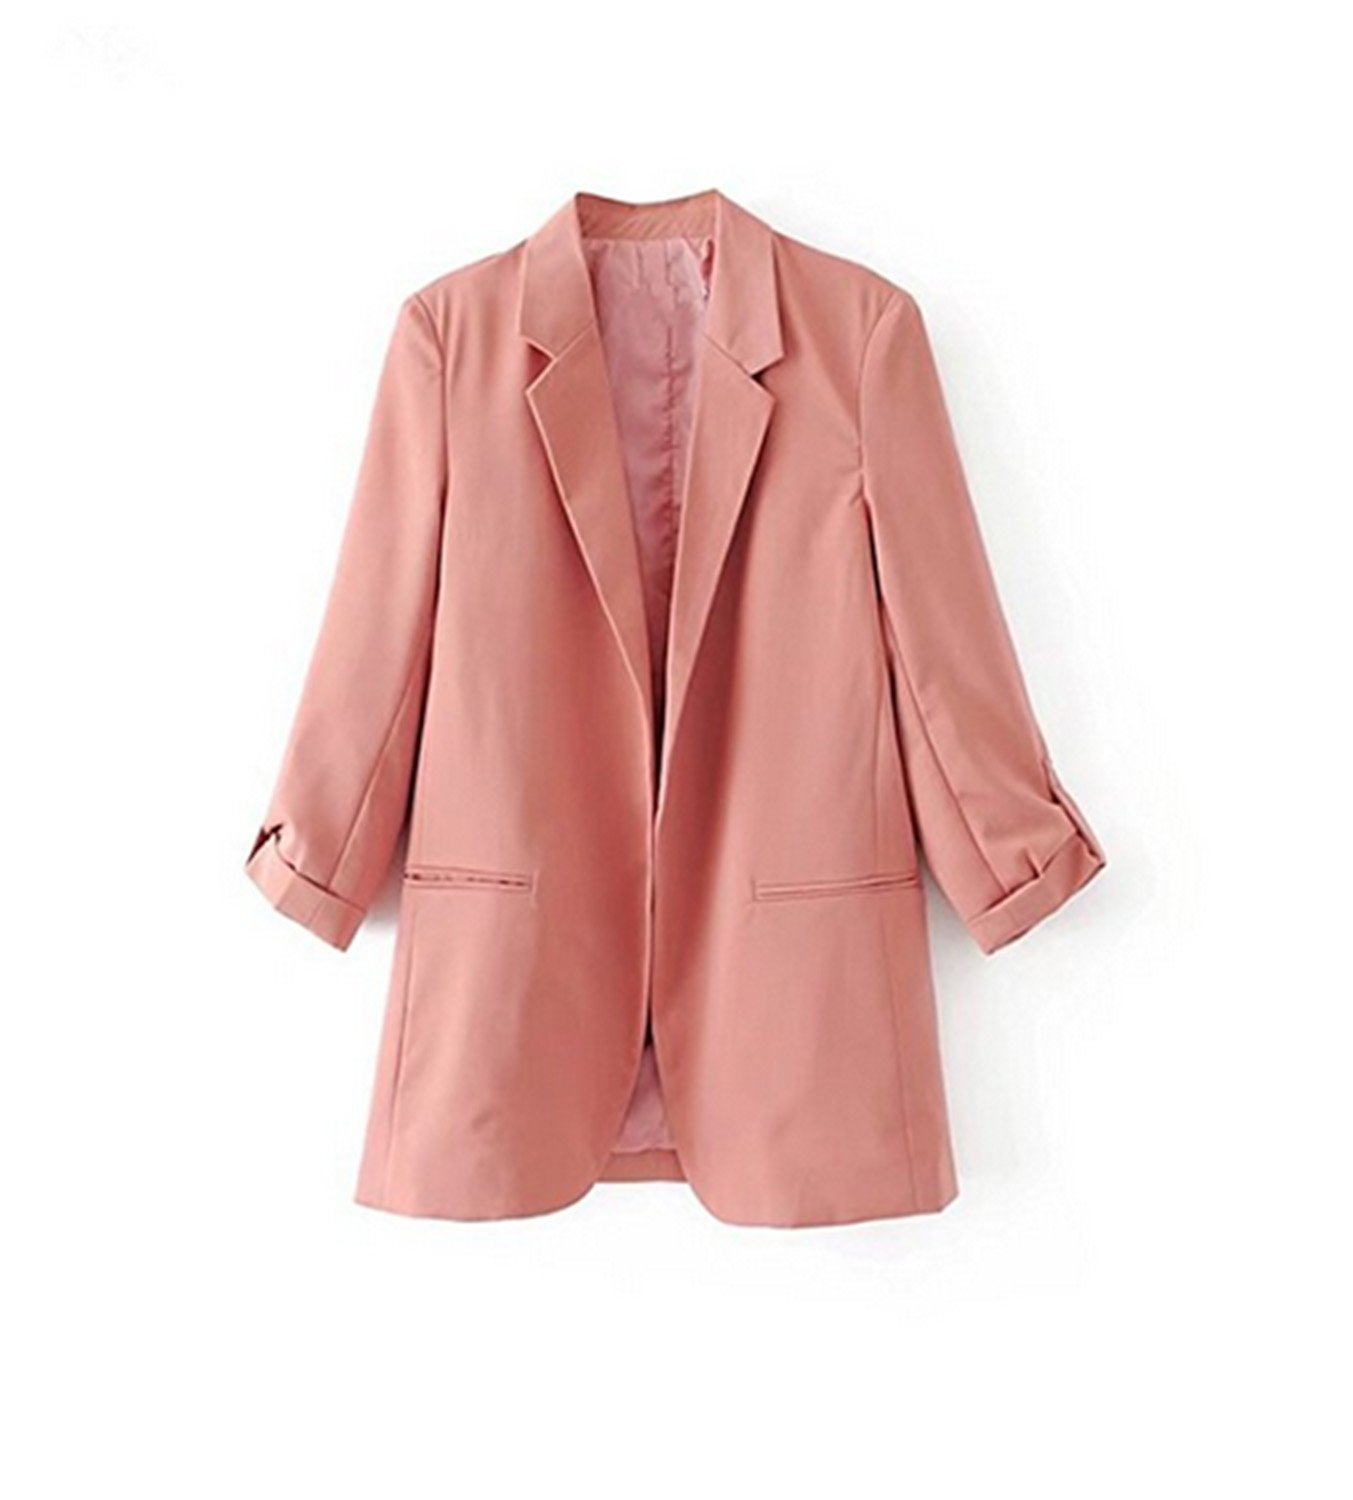 Toping Fine Spring New European Casual Women Blazer Three Quarter Sleeve Lady's Small Suit Coat, XDC7712 BlackMedium by Toping Fine wool-outerwear-coats (Image #1)